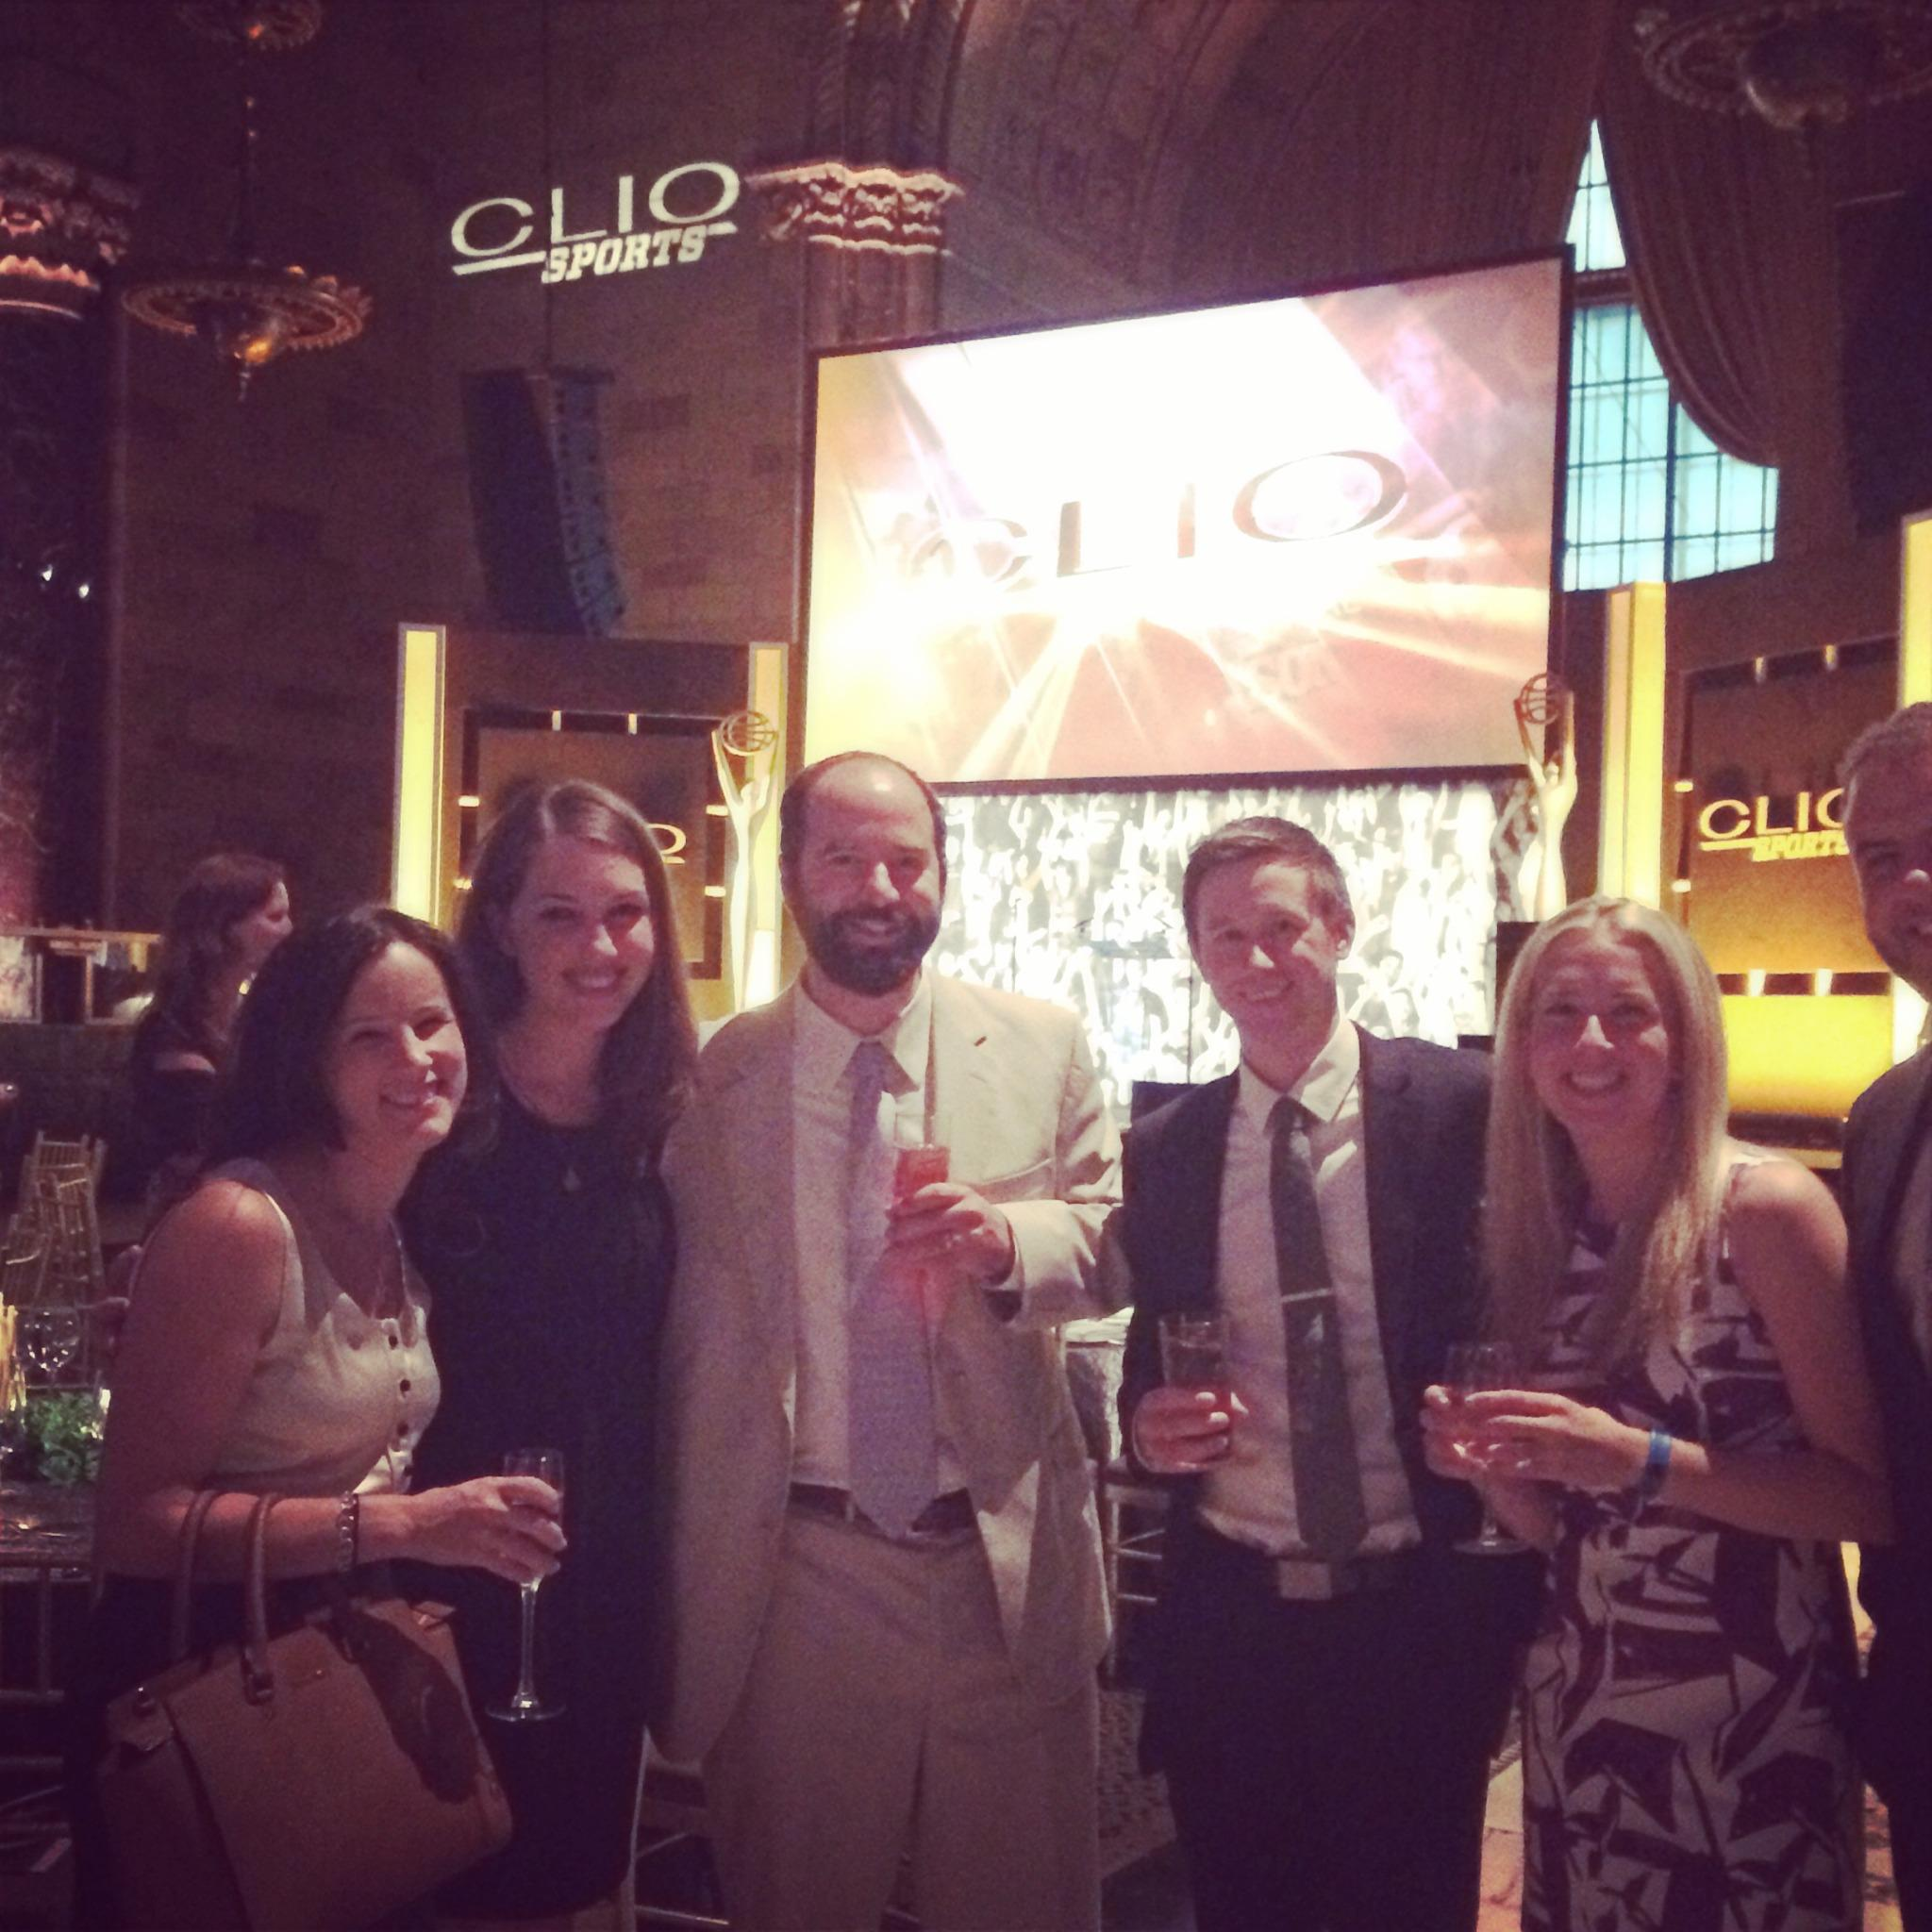 Congrats to the @Dicks team who took home the Grand Clio for Integrated Campaign at the Clio Sports Awards! #omdwins http://t.co/sw5lUKH568